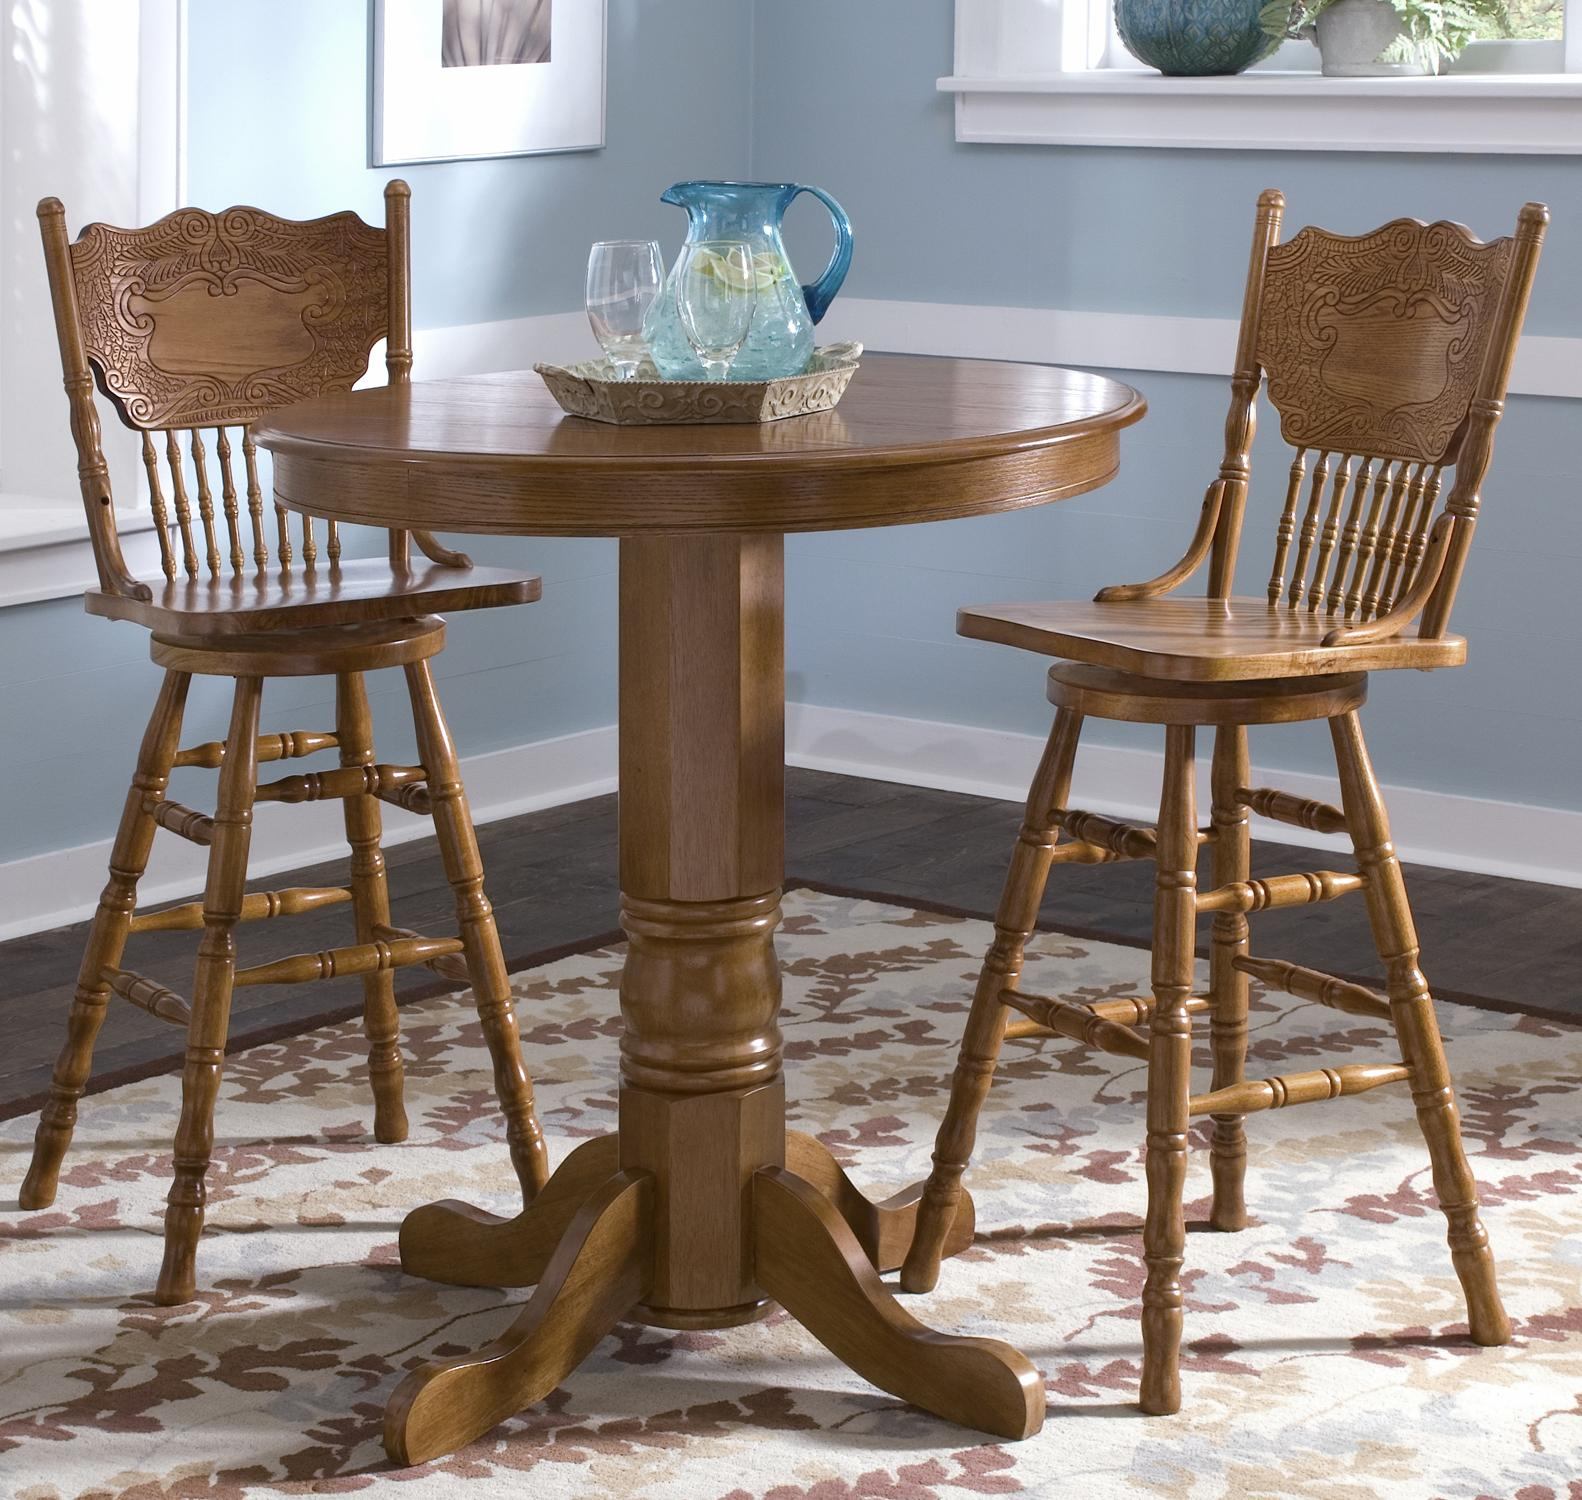 Delicieux 3 Piece Round Pub Table Dining Set